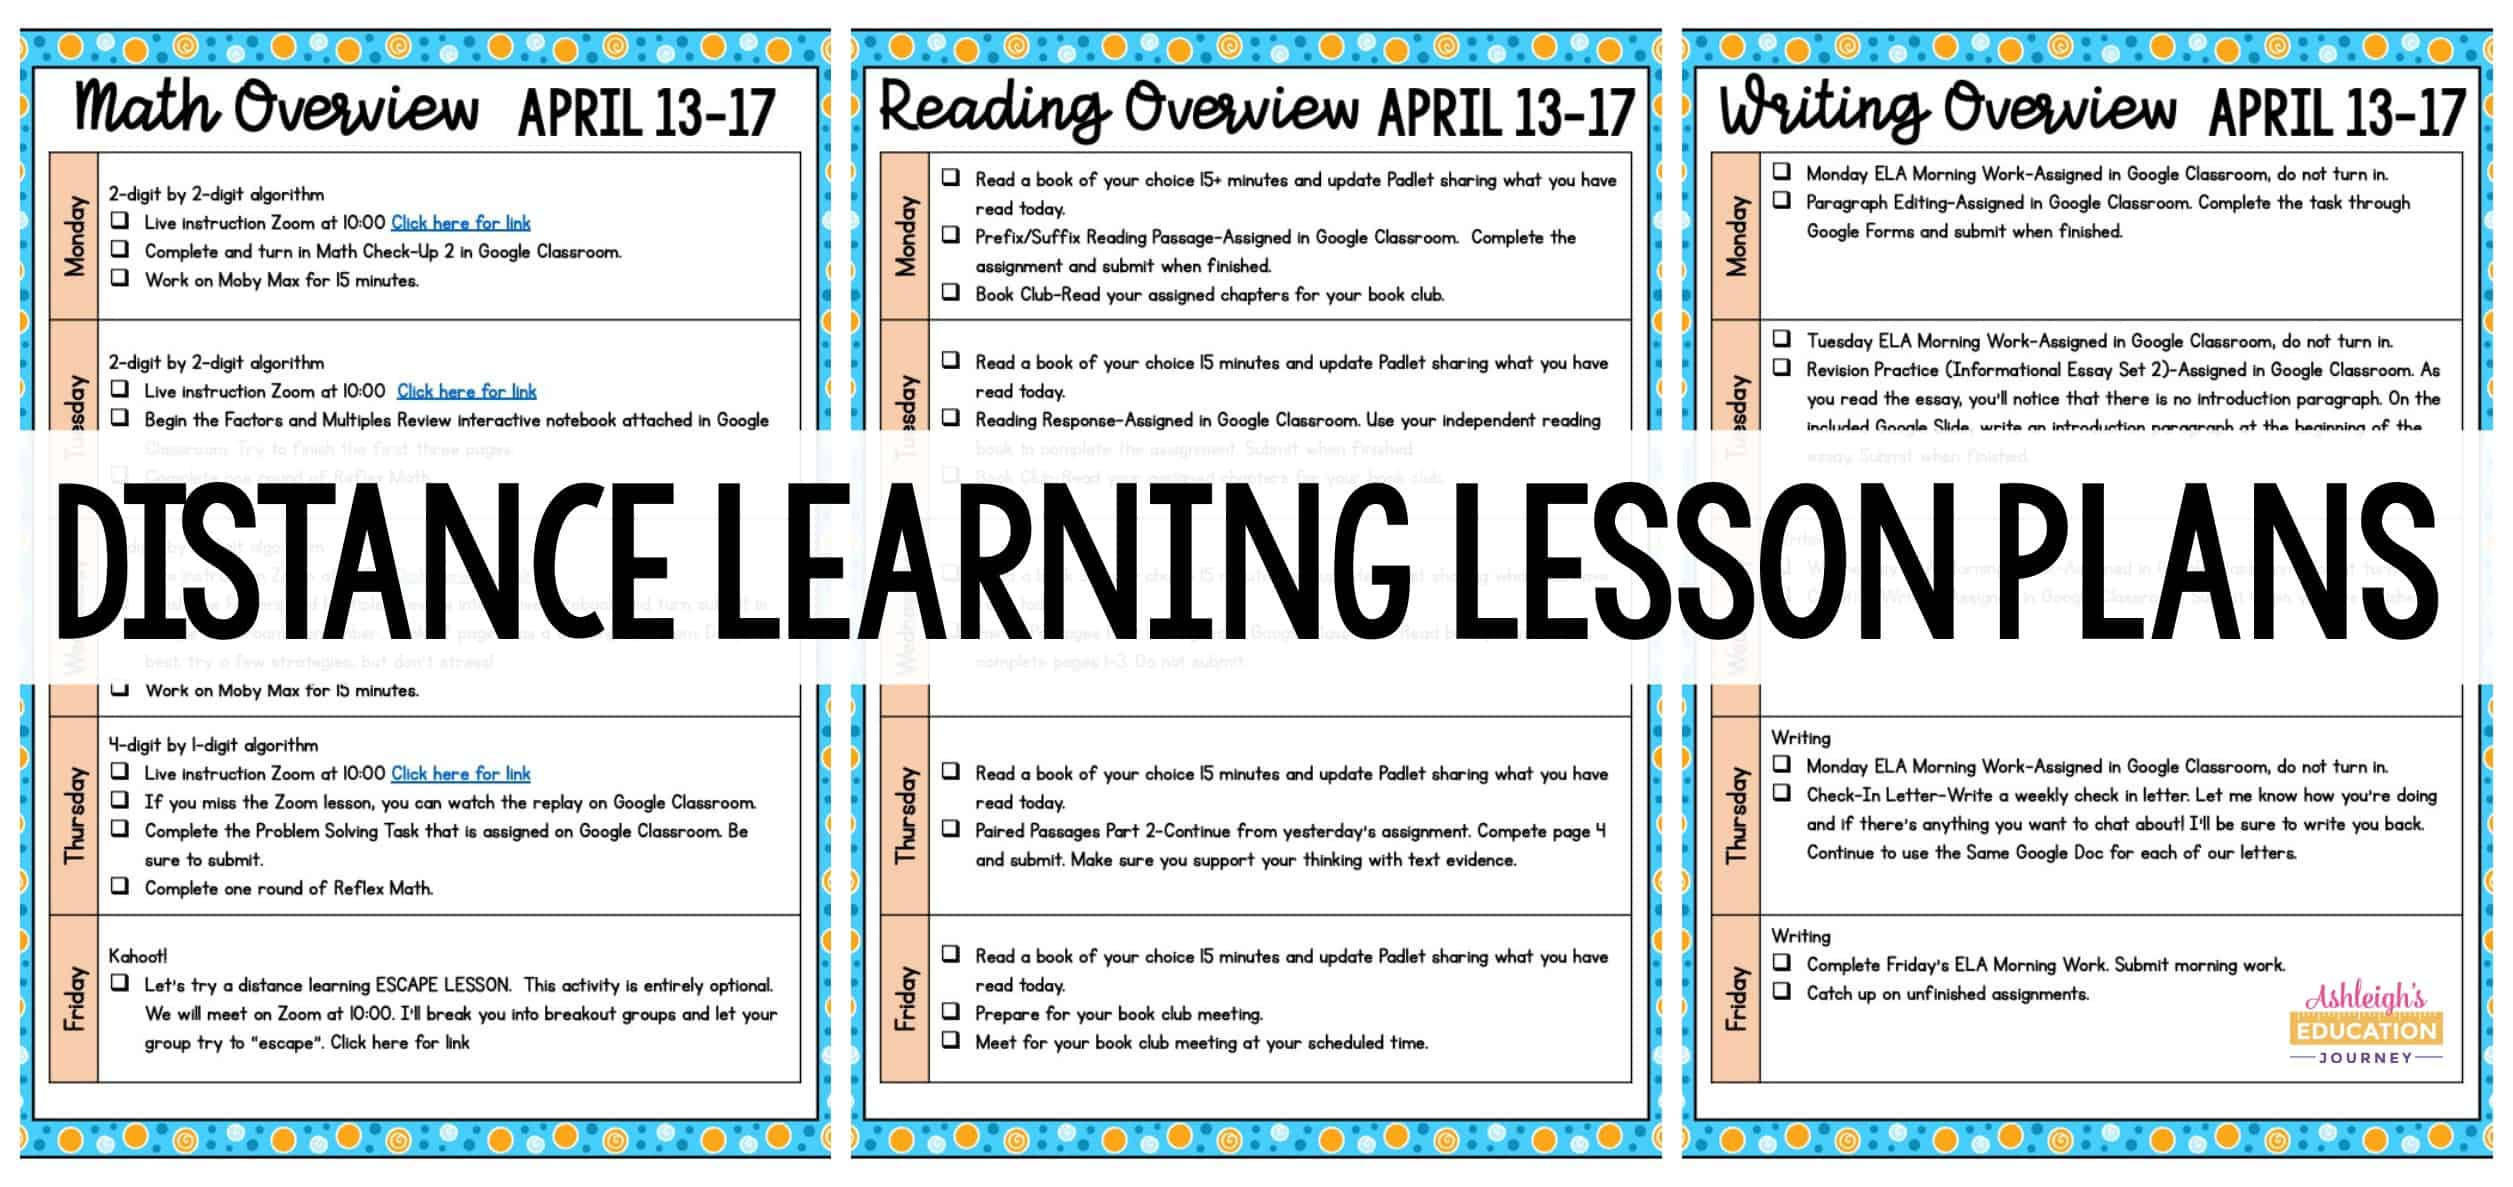 Distance Learning Lesson Plans header with worksheets in the background